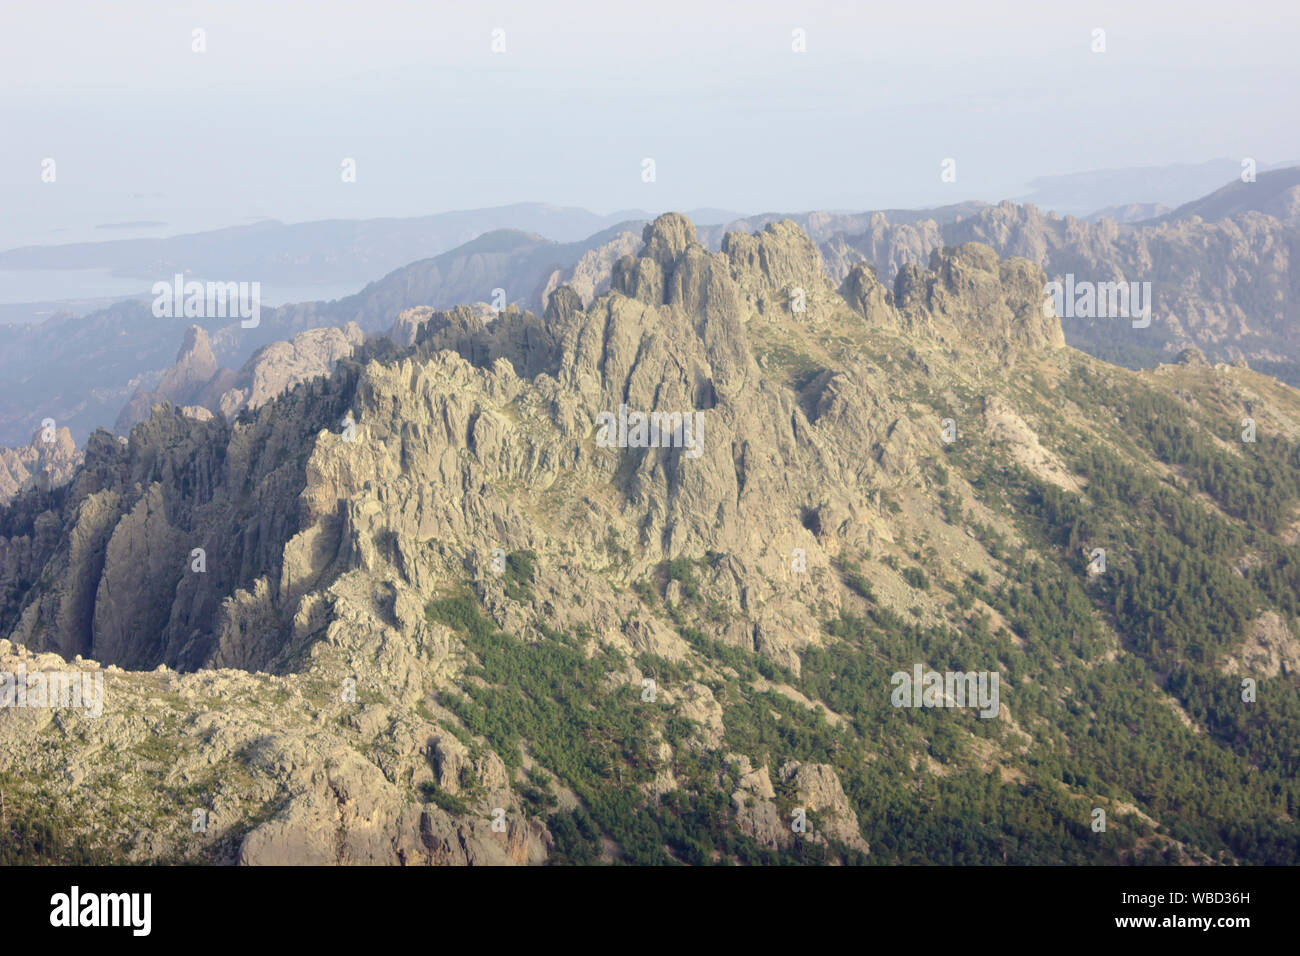 Bavella, view from Monte Incudine, France, Corsica, GR20 Stock Photo